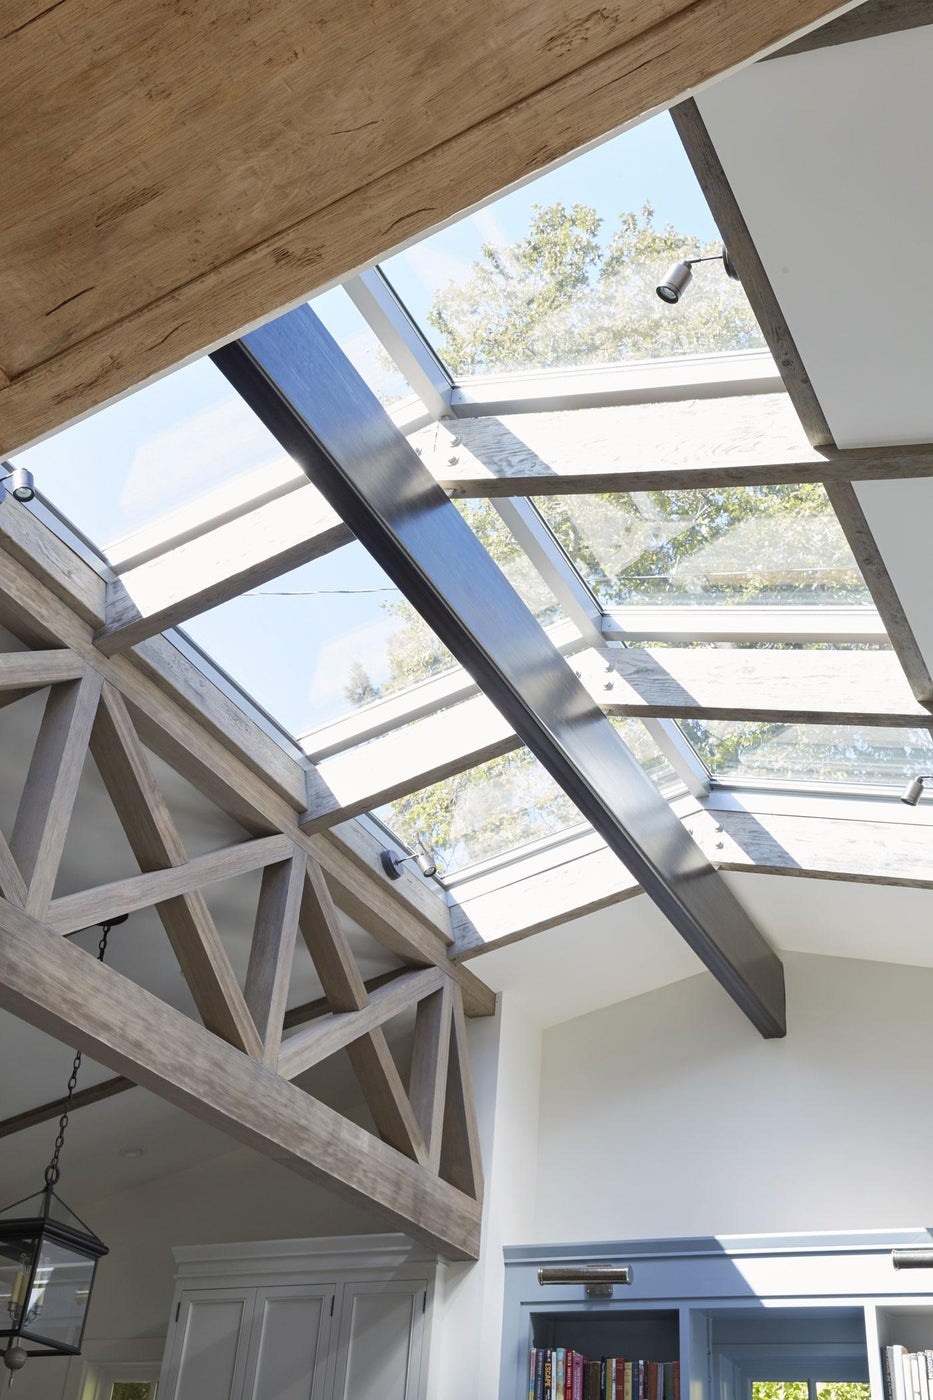 Skylight Detail in a Ranch House Renovation